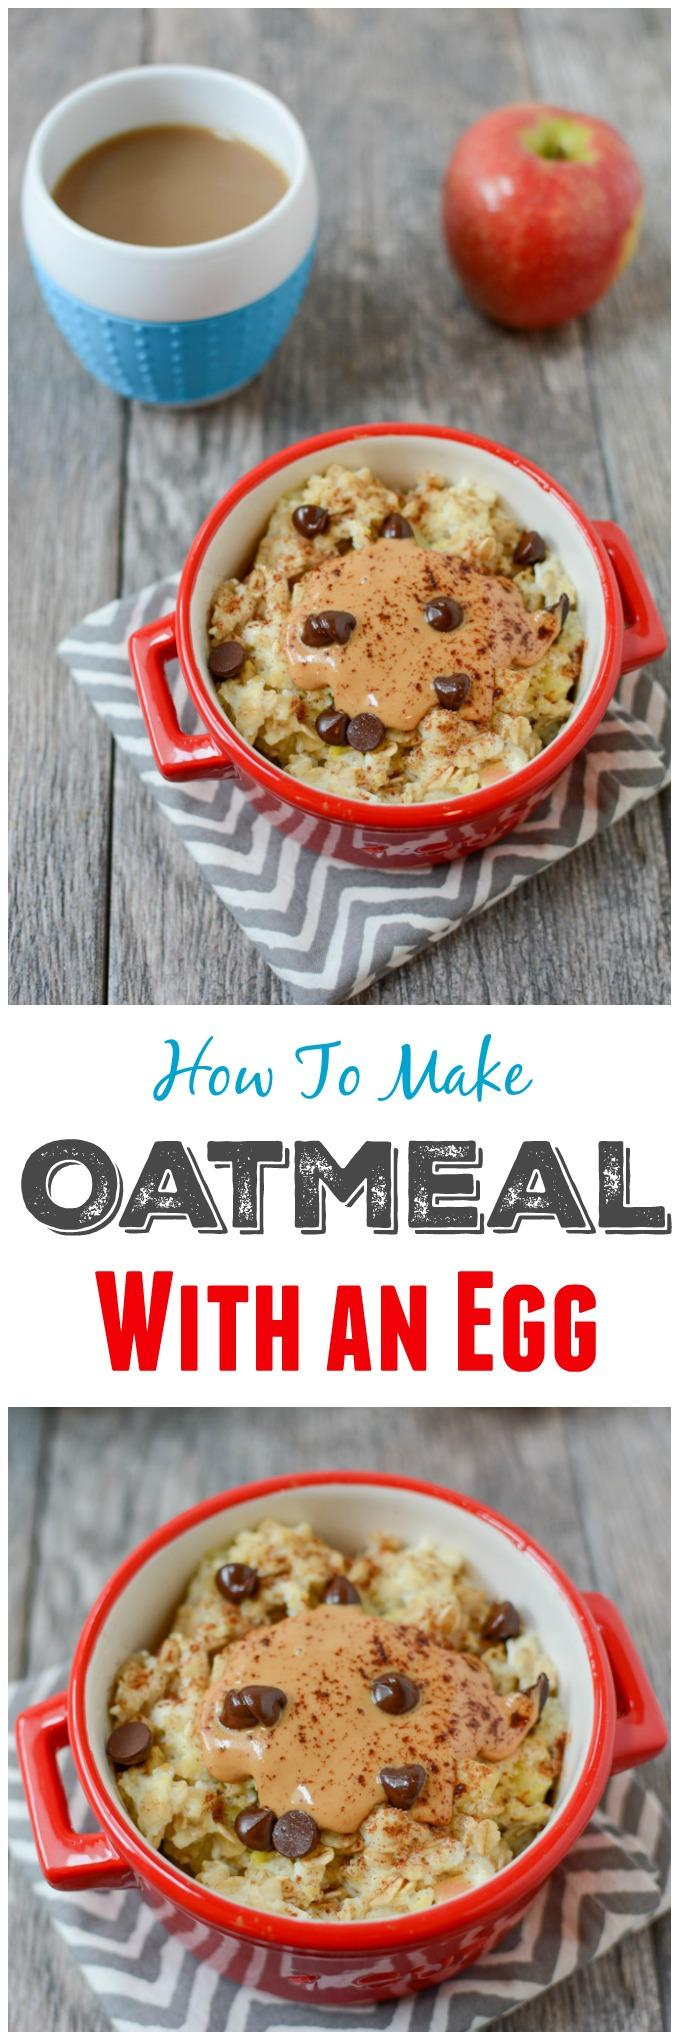 How To Cook Oatmeal With An Egg In The Microwave